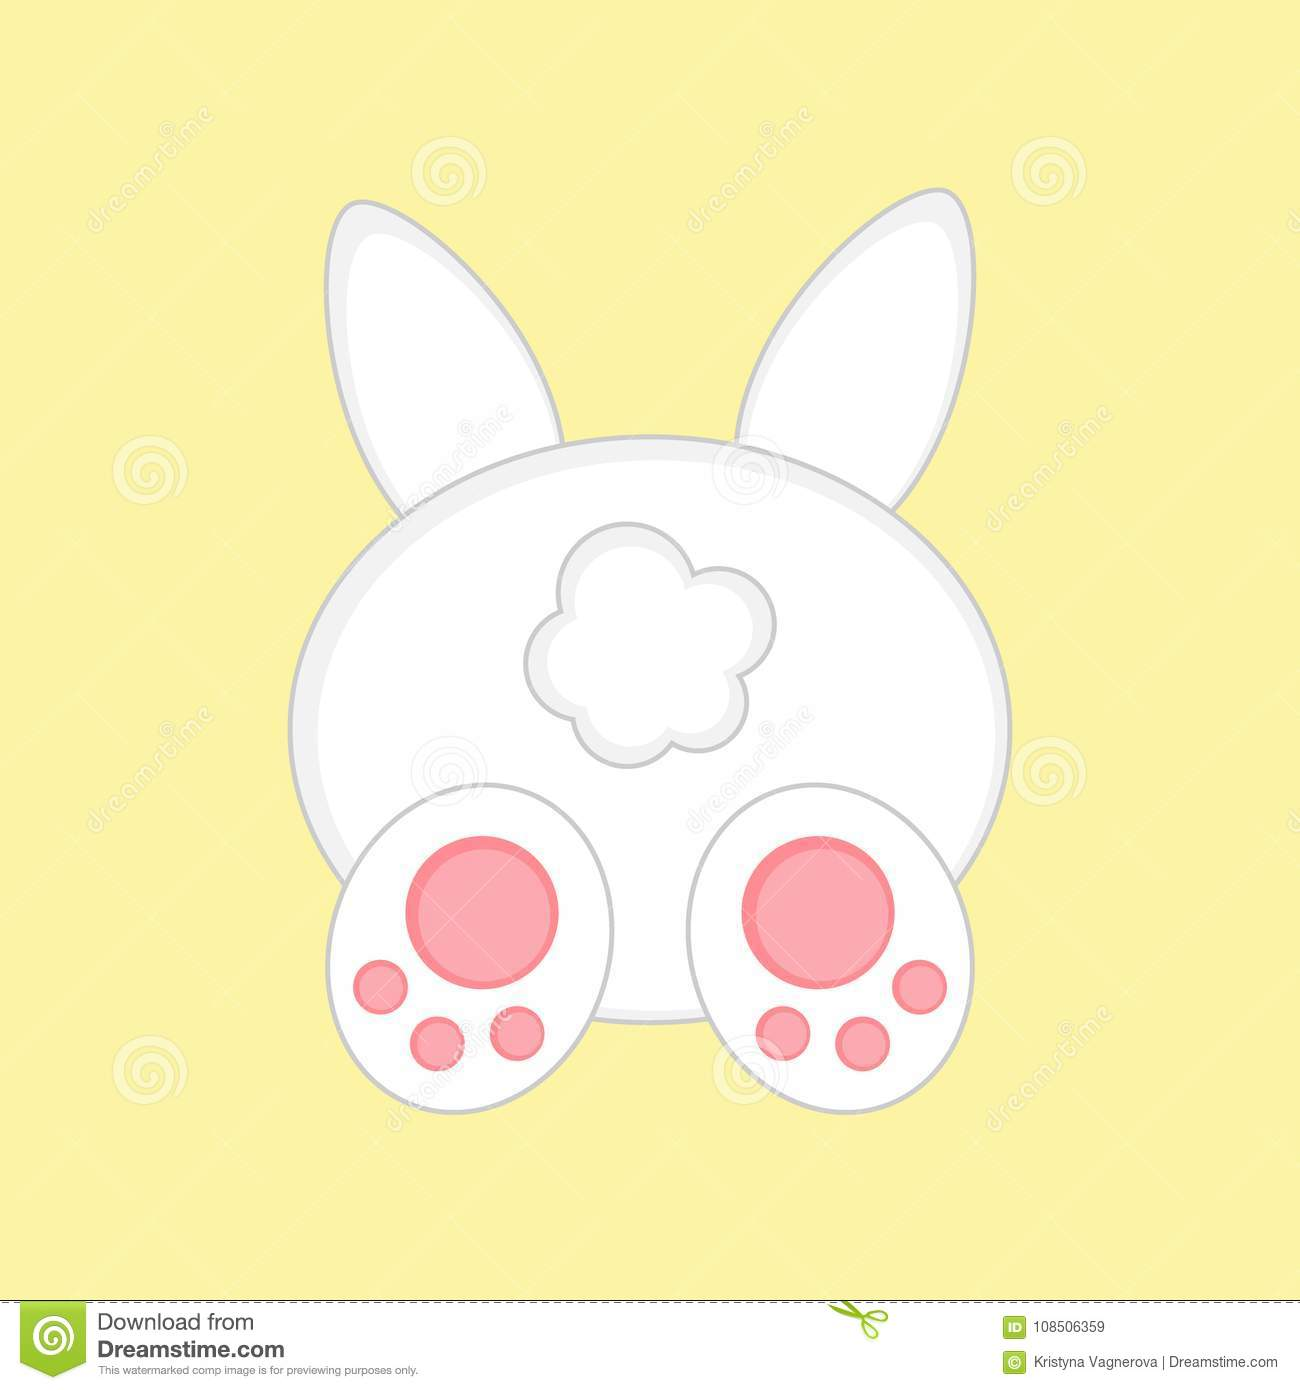 Cute Easter Bunny From Back View Stock Vector ...